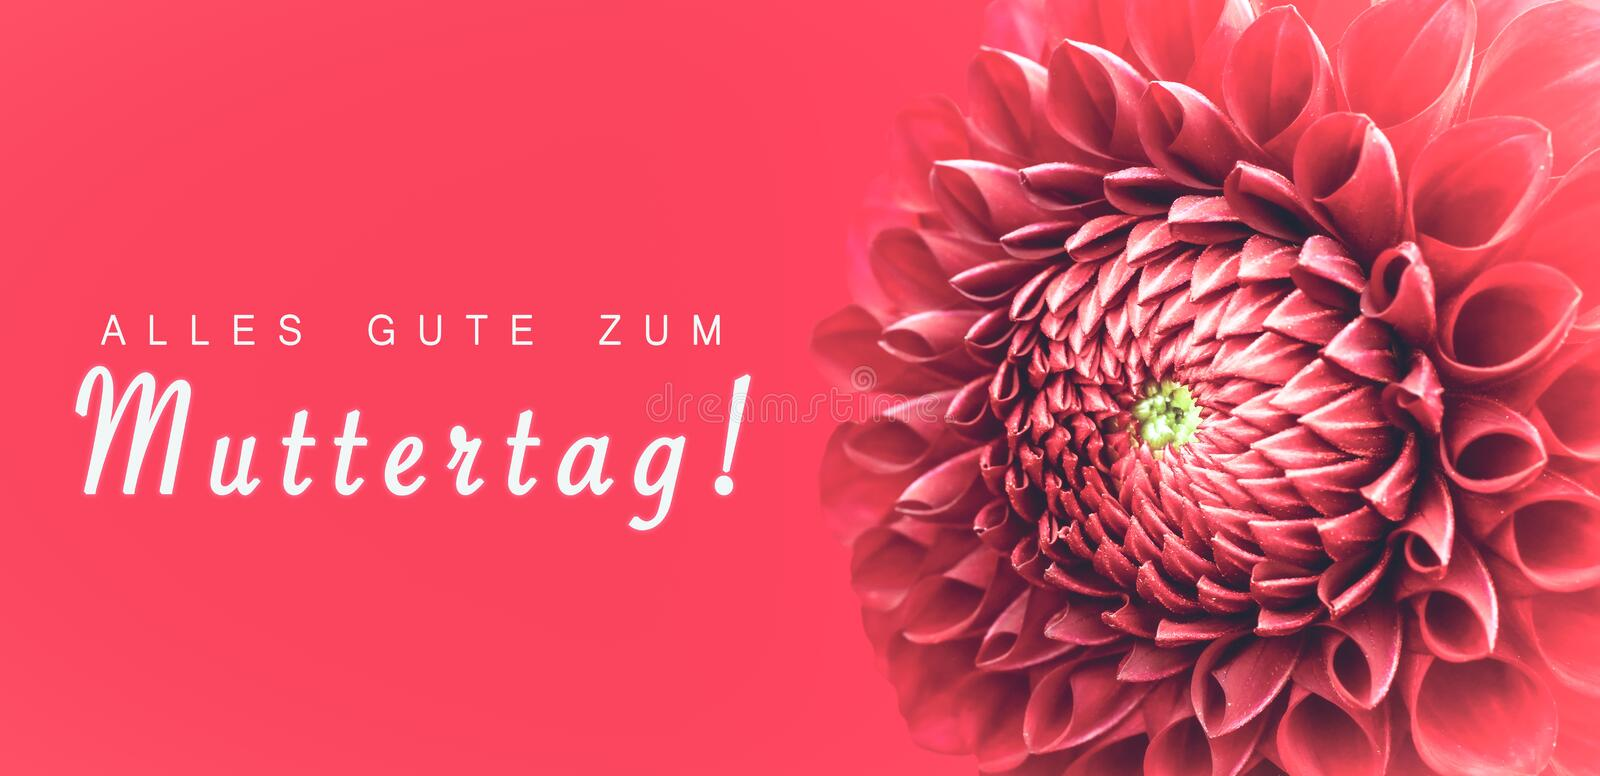 Alles Gute zum Muttertag! text in German: Happy Mothers`s Day! and pink dahlia flower details macro photo. royalty free stock image